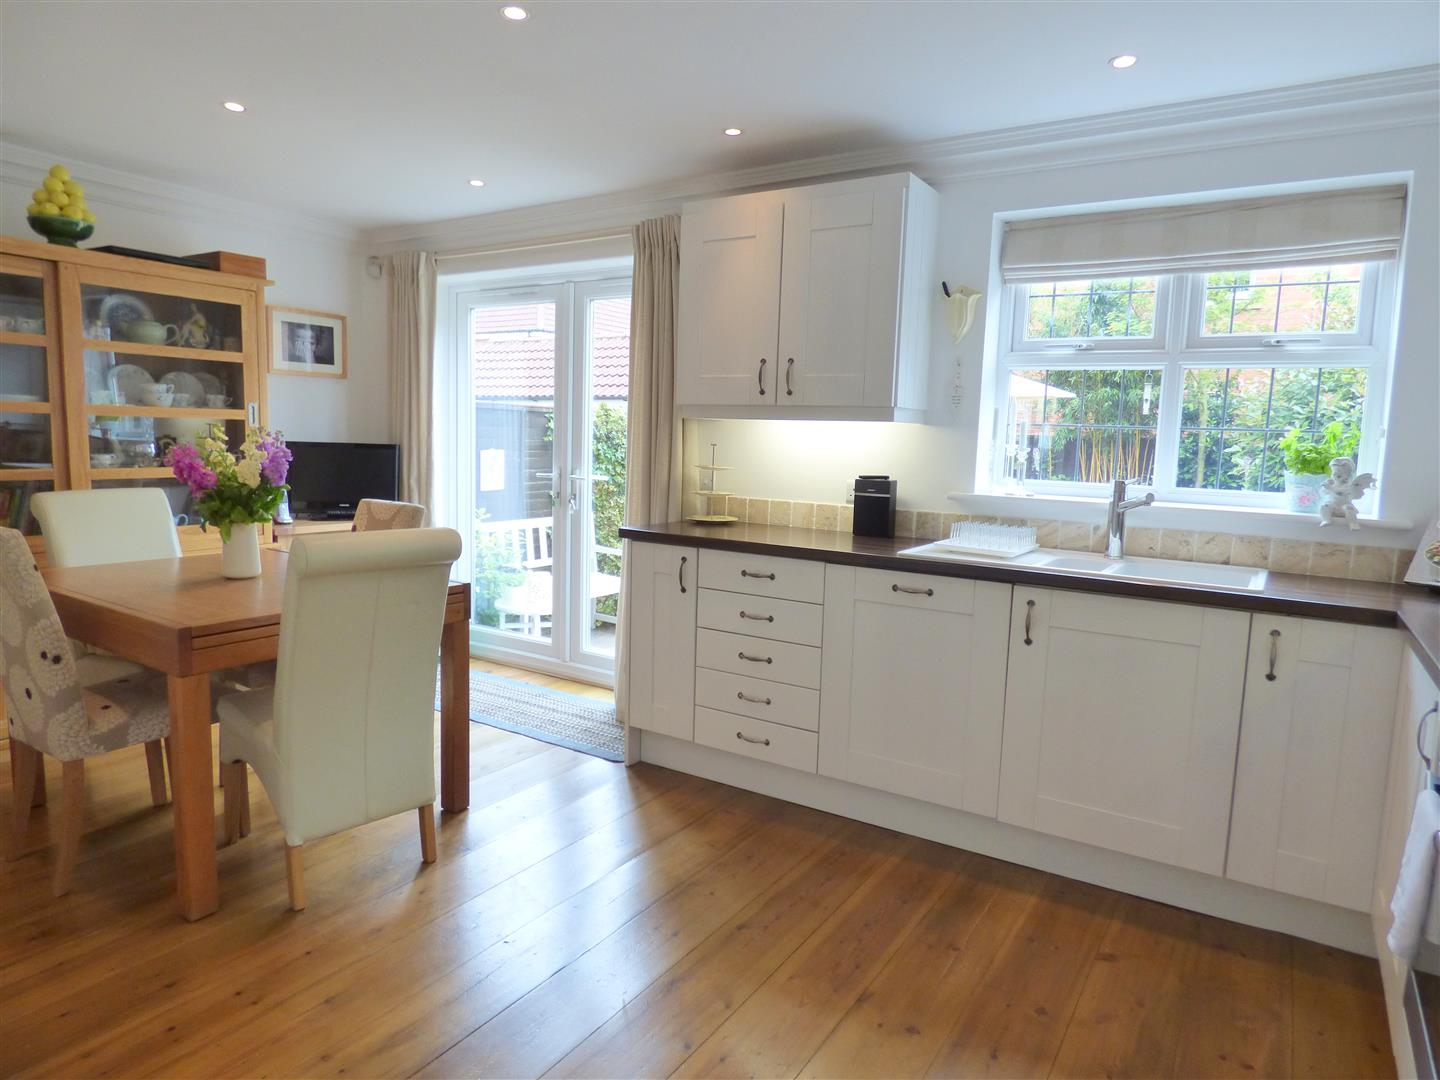 Kitchen Diner Flooring House Semi Detached 44 The Orchard Leven Beverley East